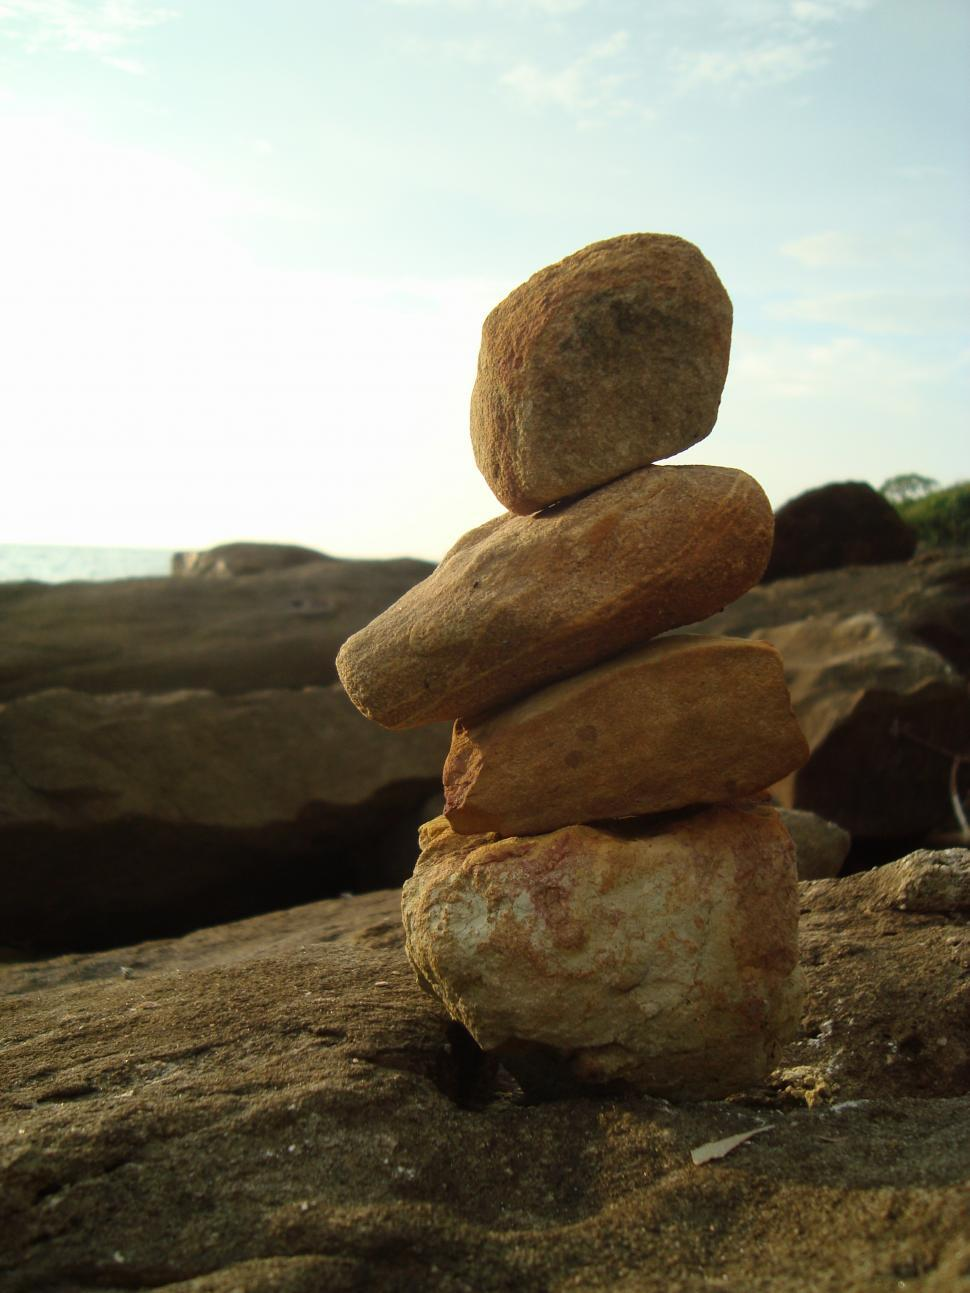 Download Free Stock Photo of Pebble Balance by the Sea